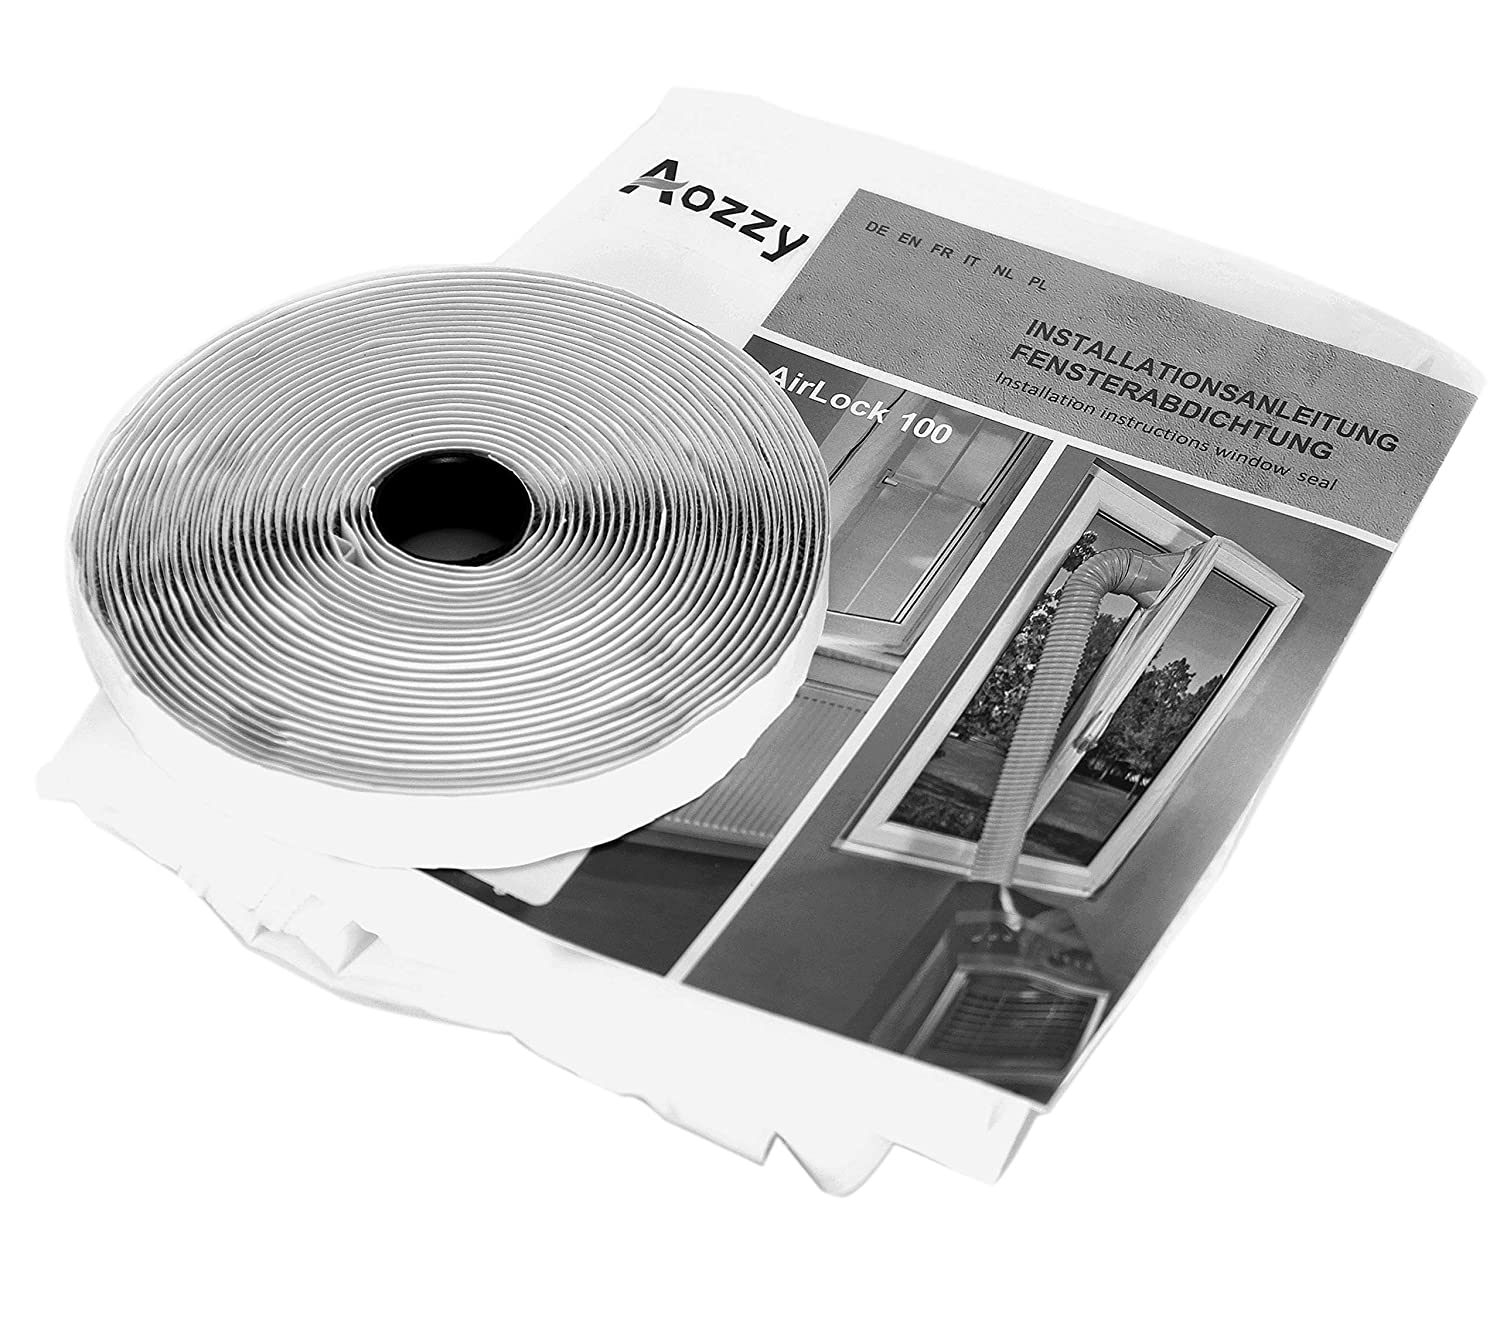 Aozzy Portable Air Conditioner window kit AirLock Window Seal for Mobile Air-Conditioning tumble dryer Hot Air Stop 400cm